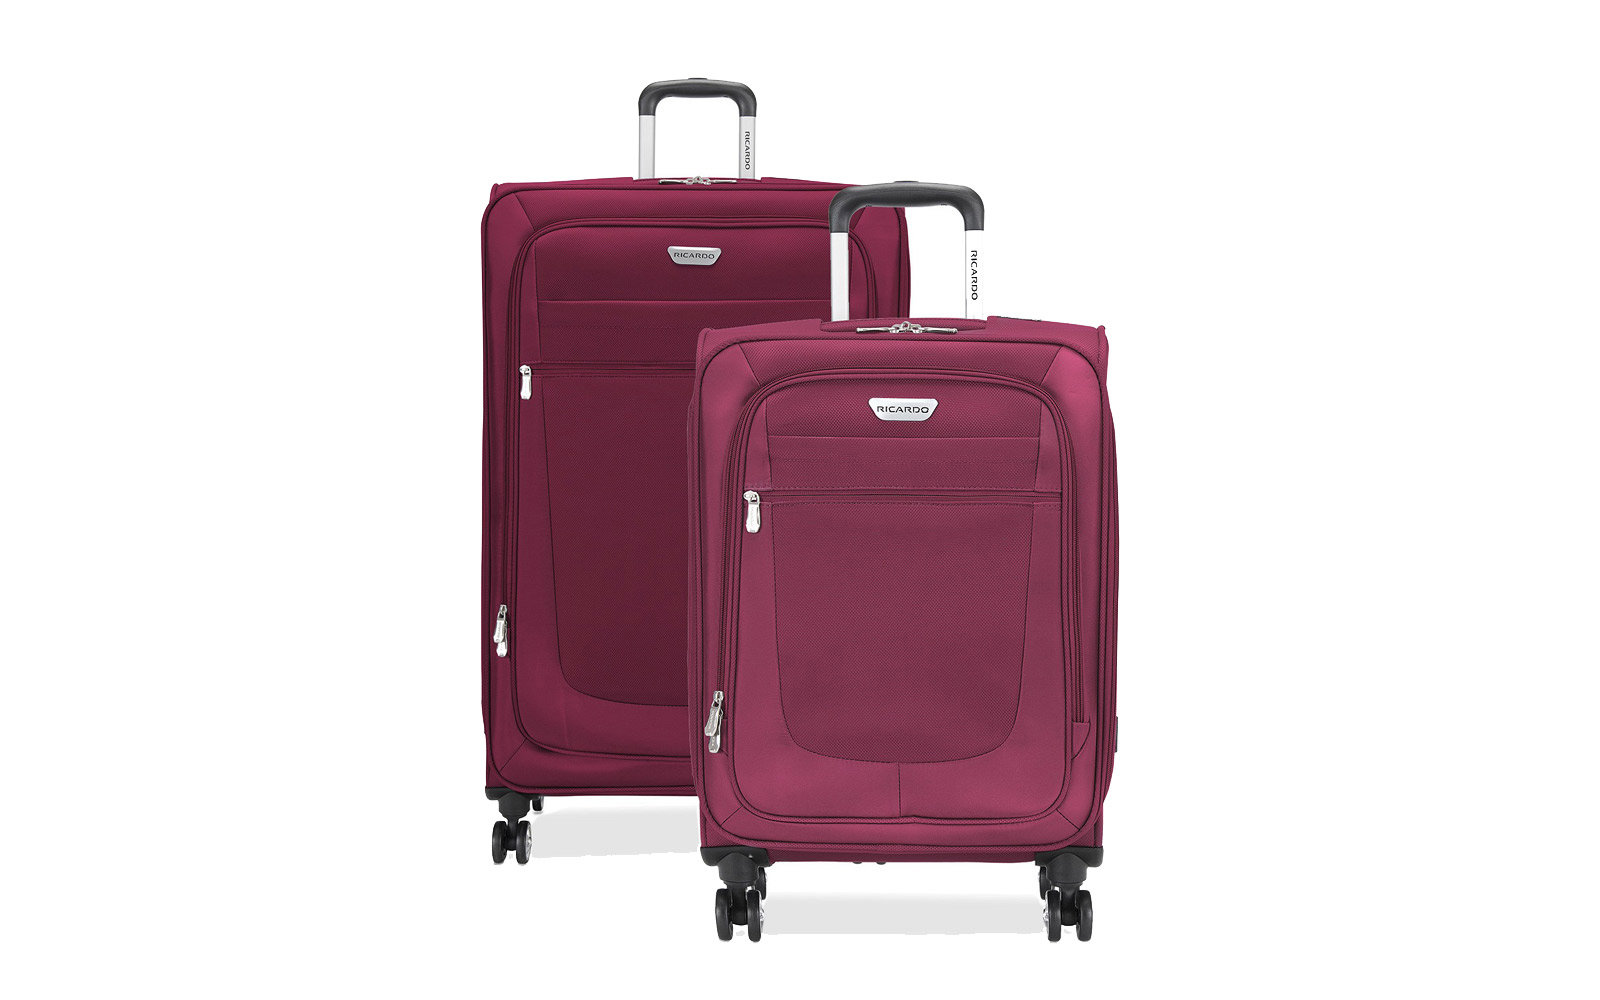 ricardo black friday luggage deals 2018